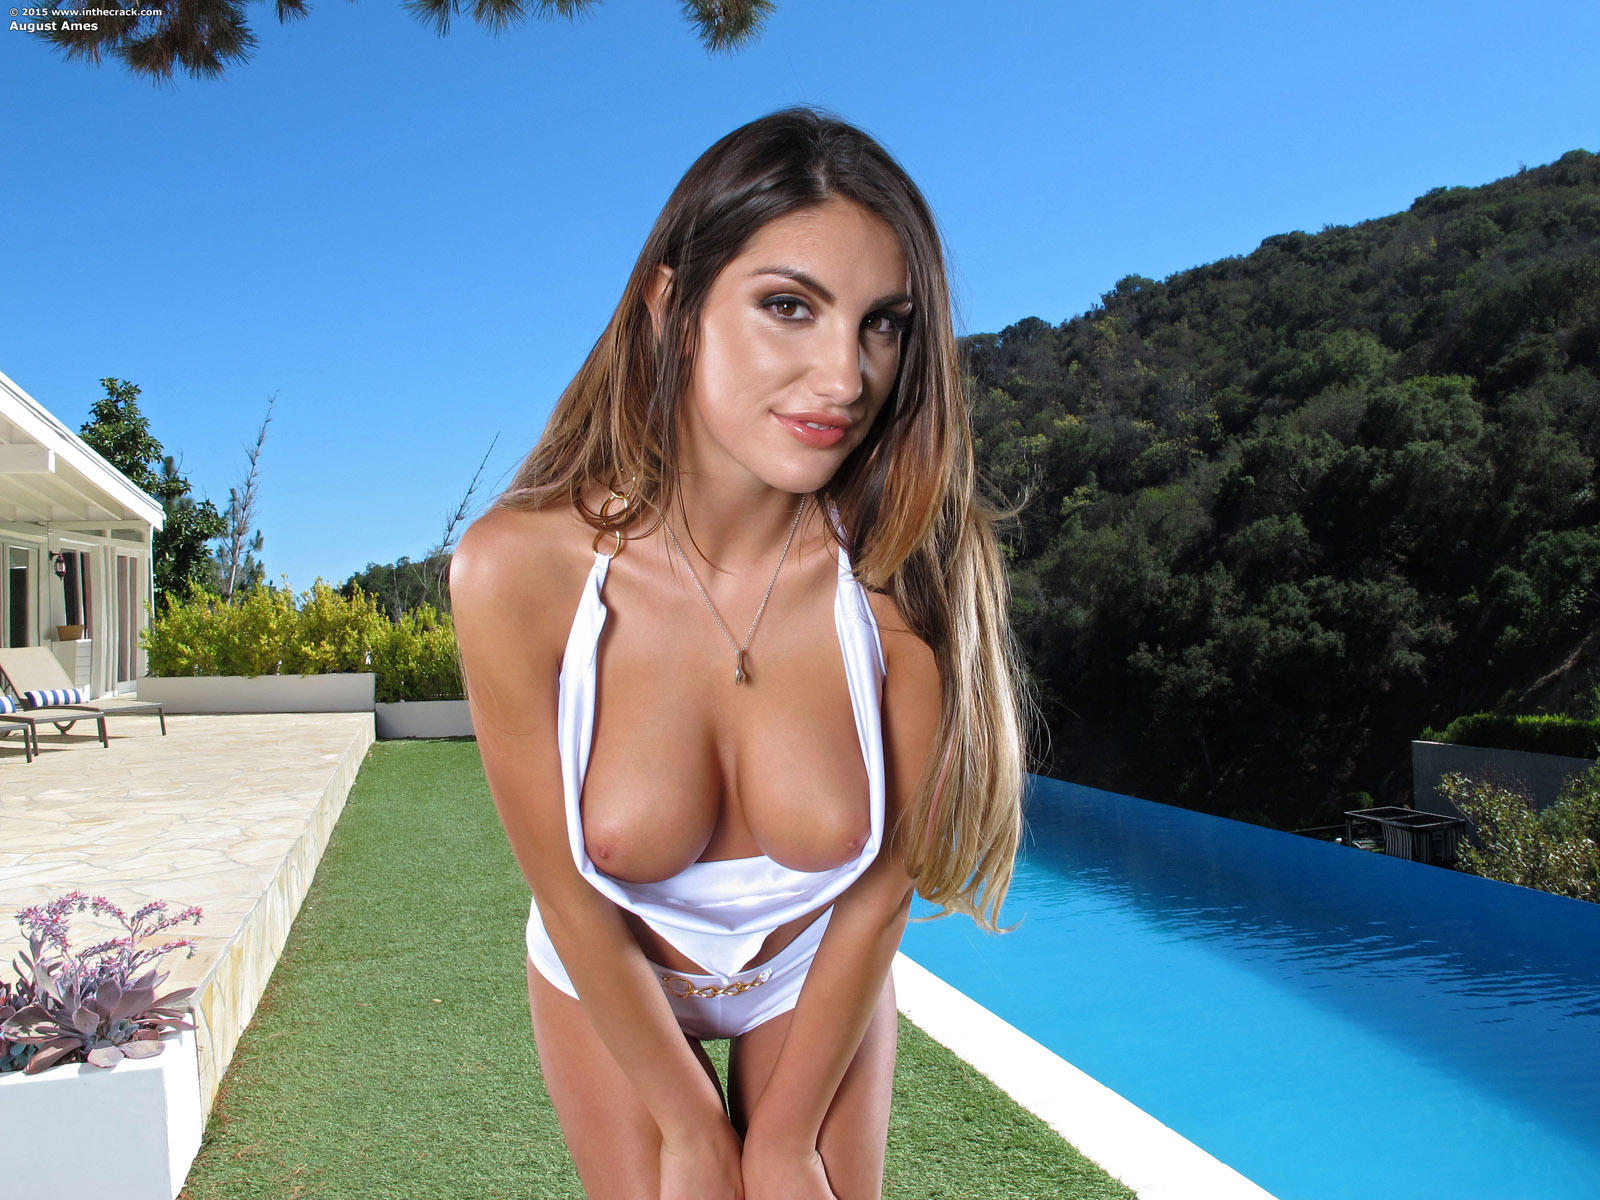 august ames poolside pussy in the crack / hotty stop